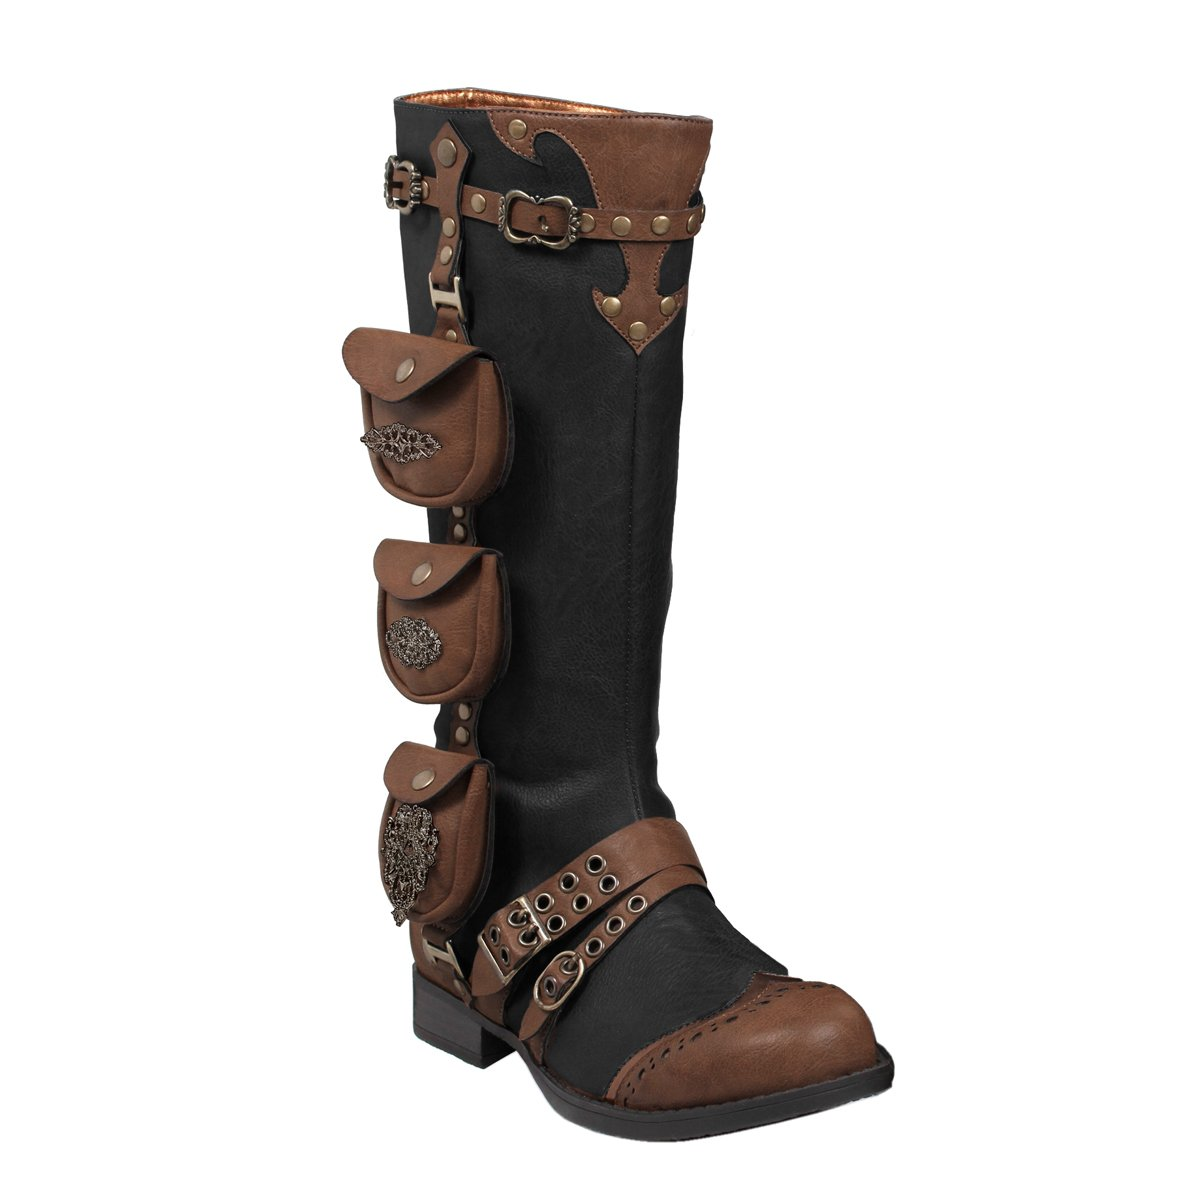 02c88214058 Amazon.com  Womens 1 Inch Heels Black Knee High Boots Steampunk Brown  Straps Costume Shoes  Clothing